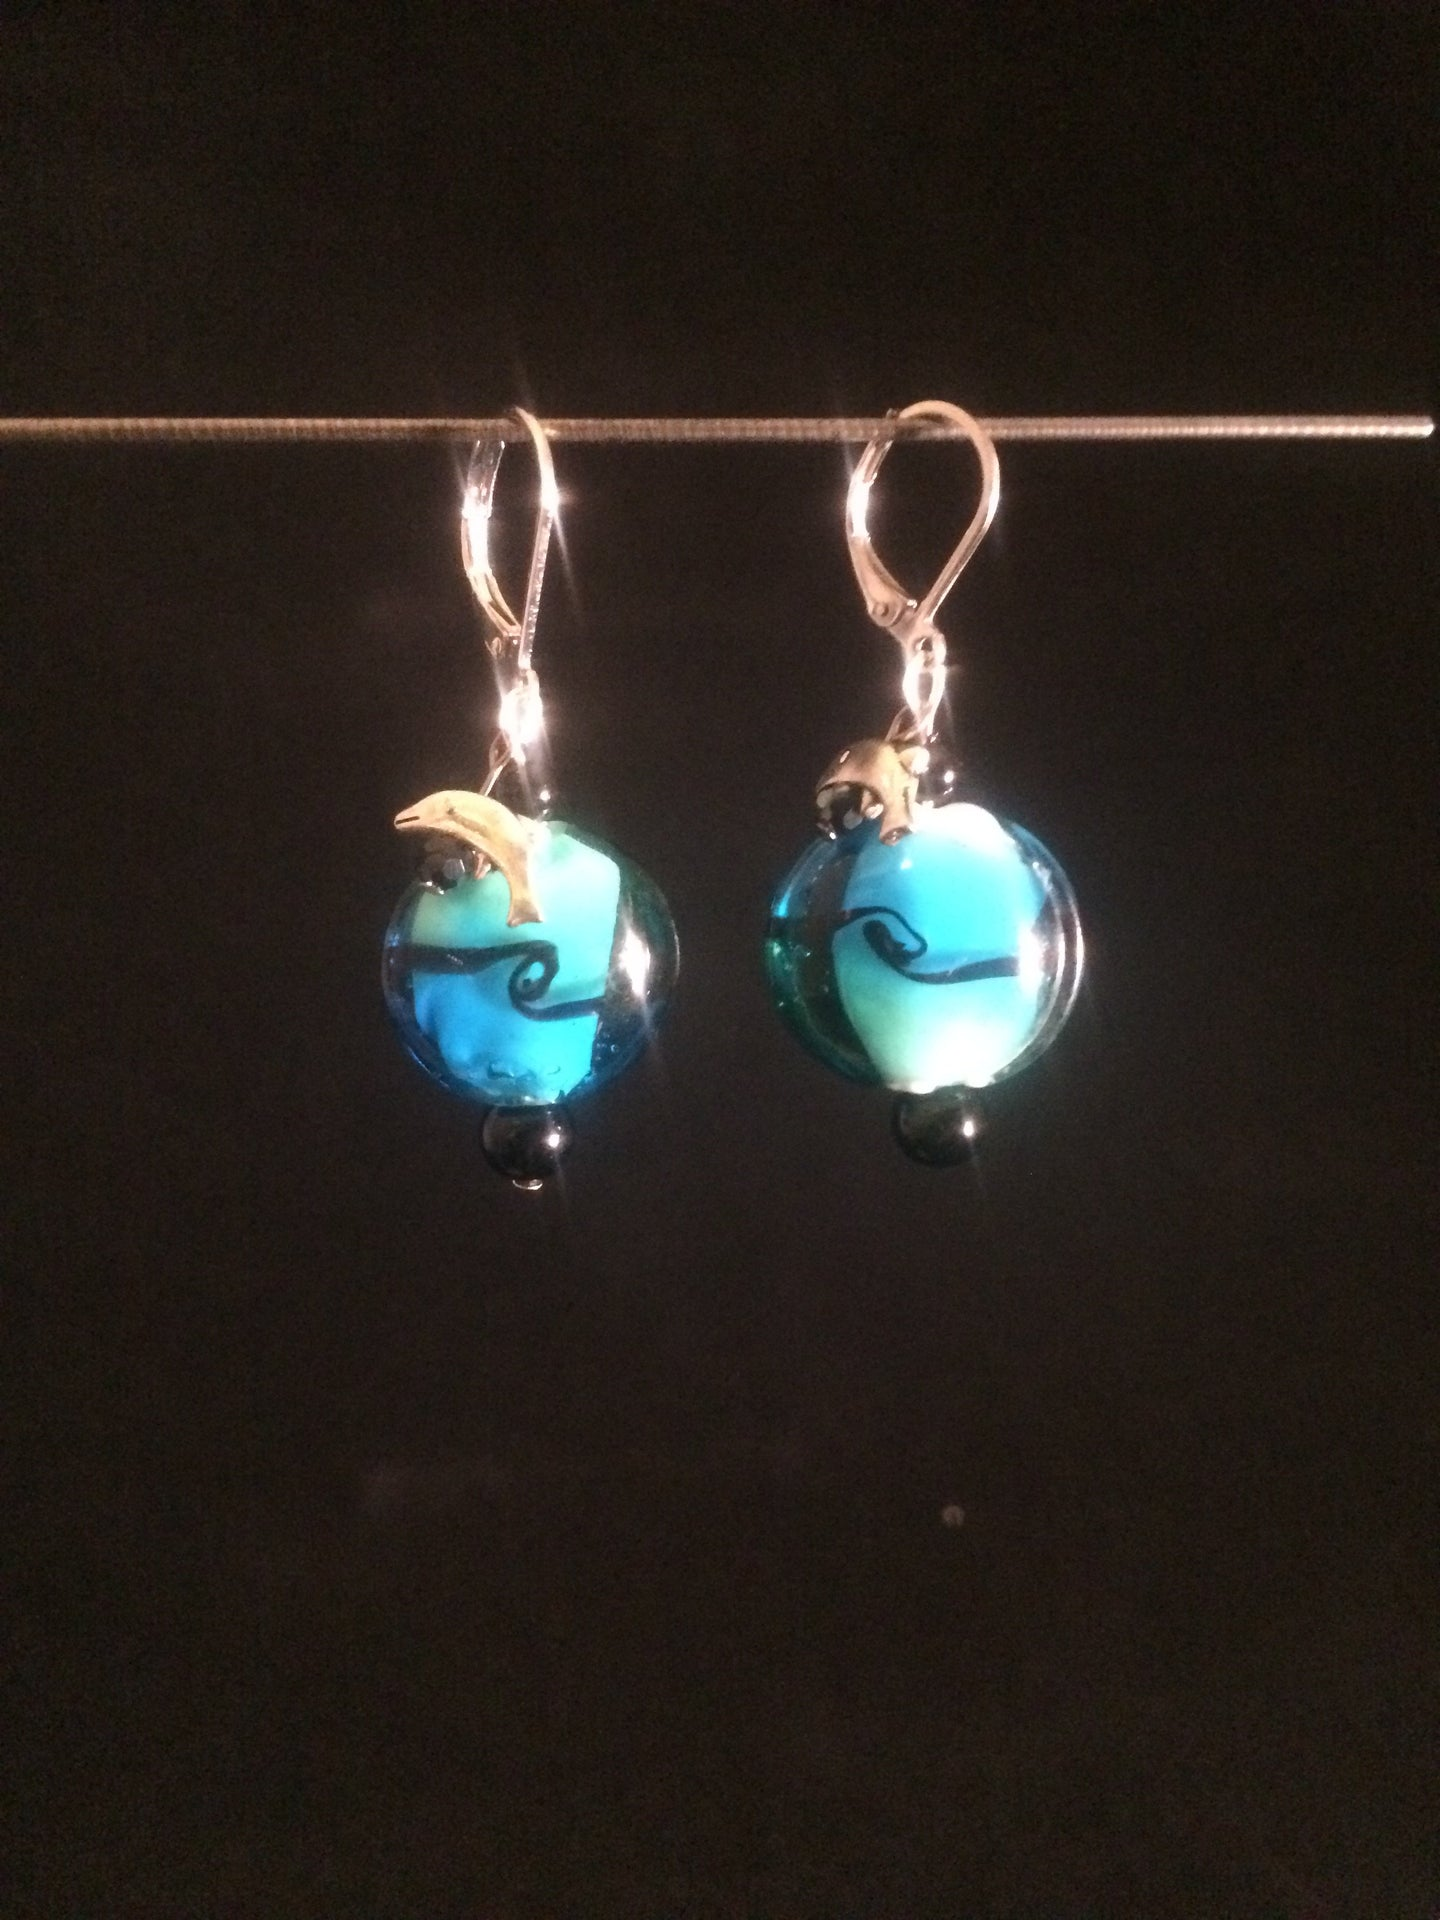 Leverback earrings made with a blue blown glass bead and adorned with a plated metal charm of either a fish, dolphin, or a shell.  Faceted and round glass beads are added for accent.